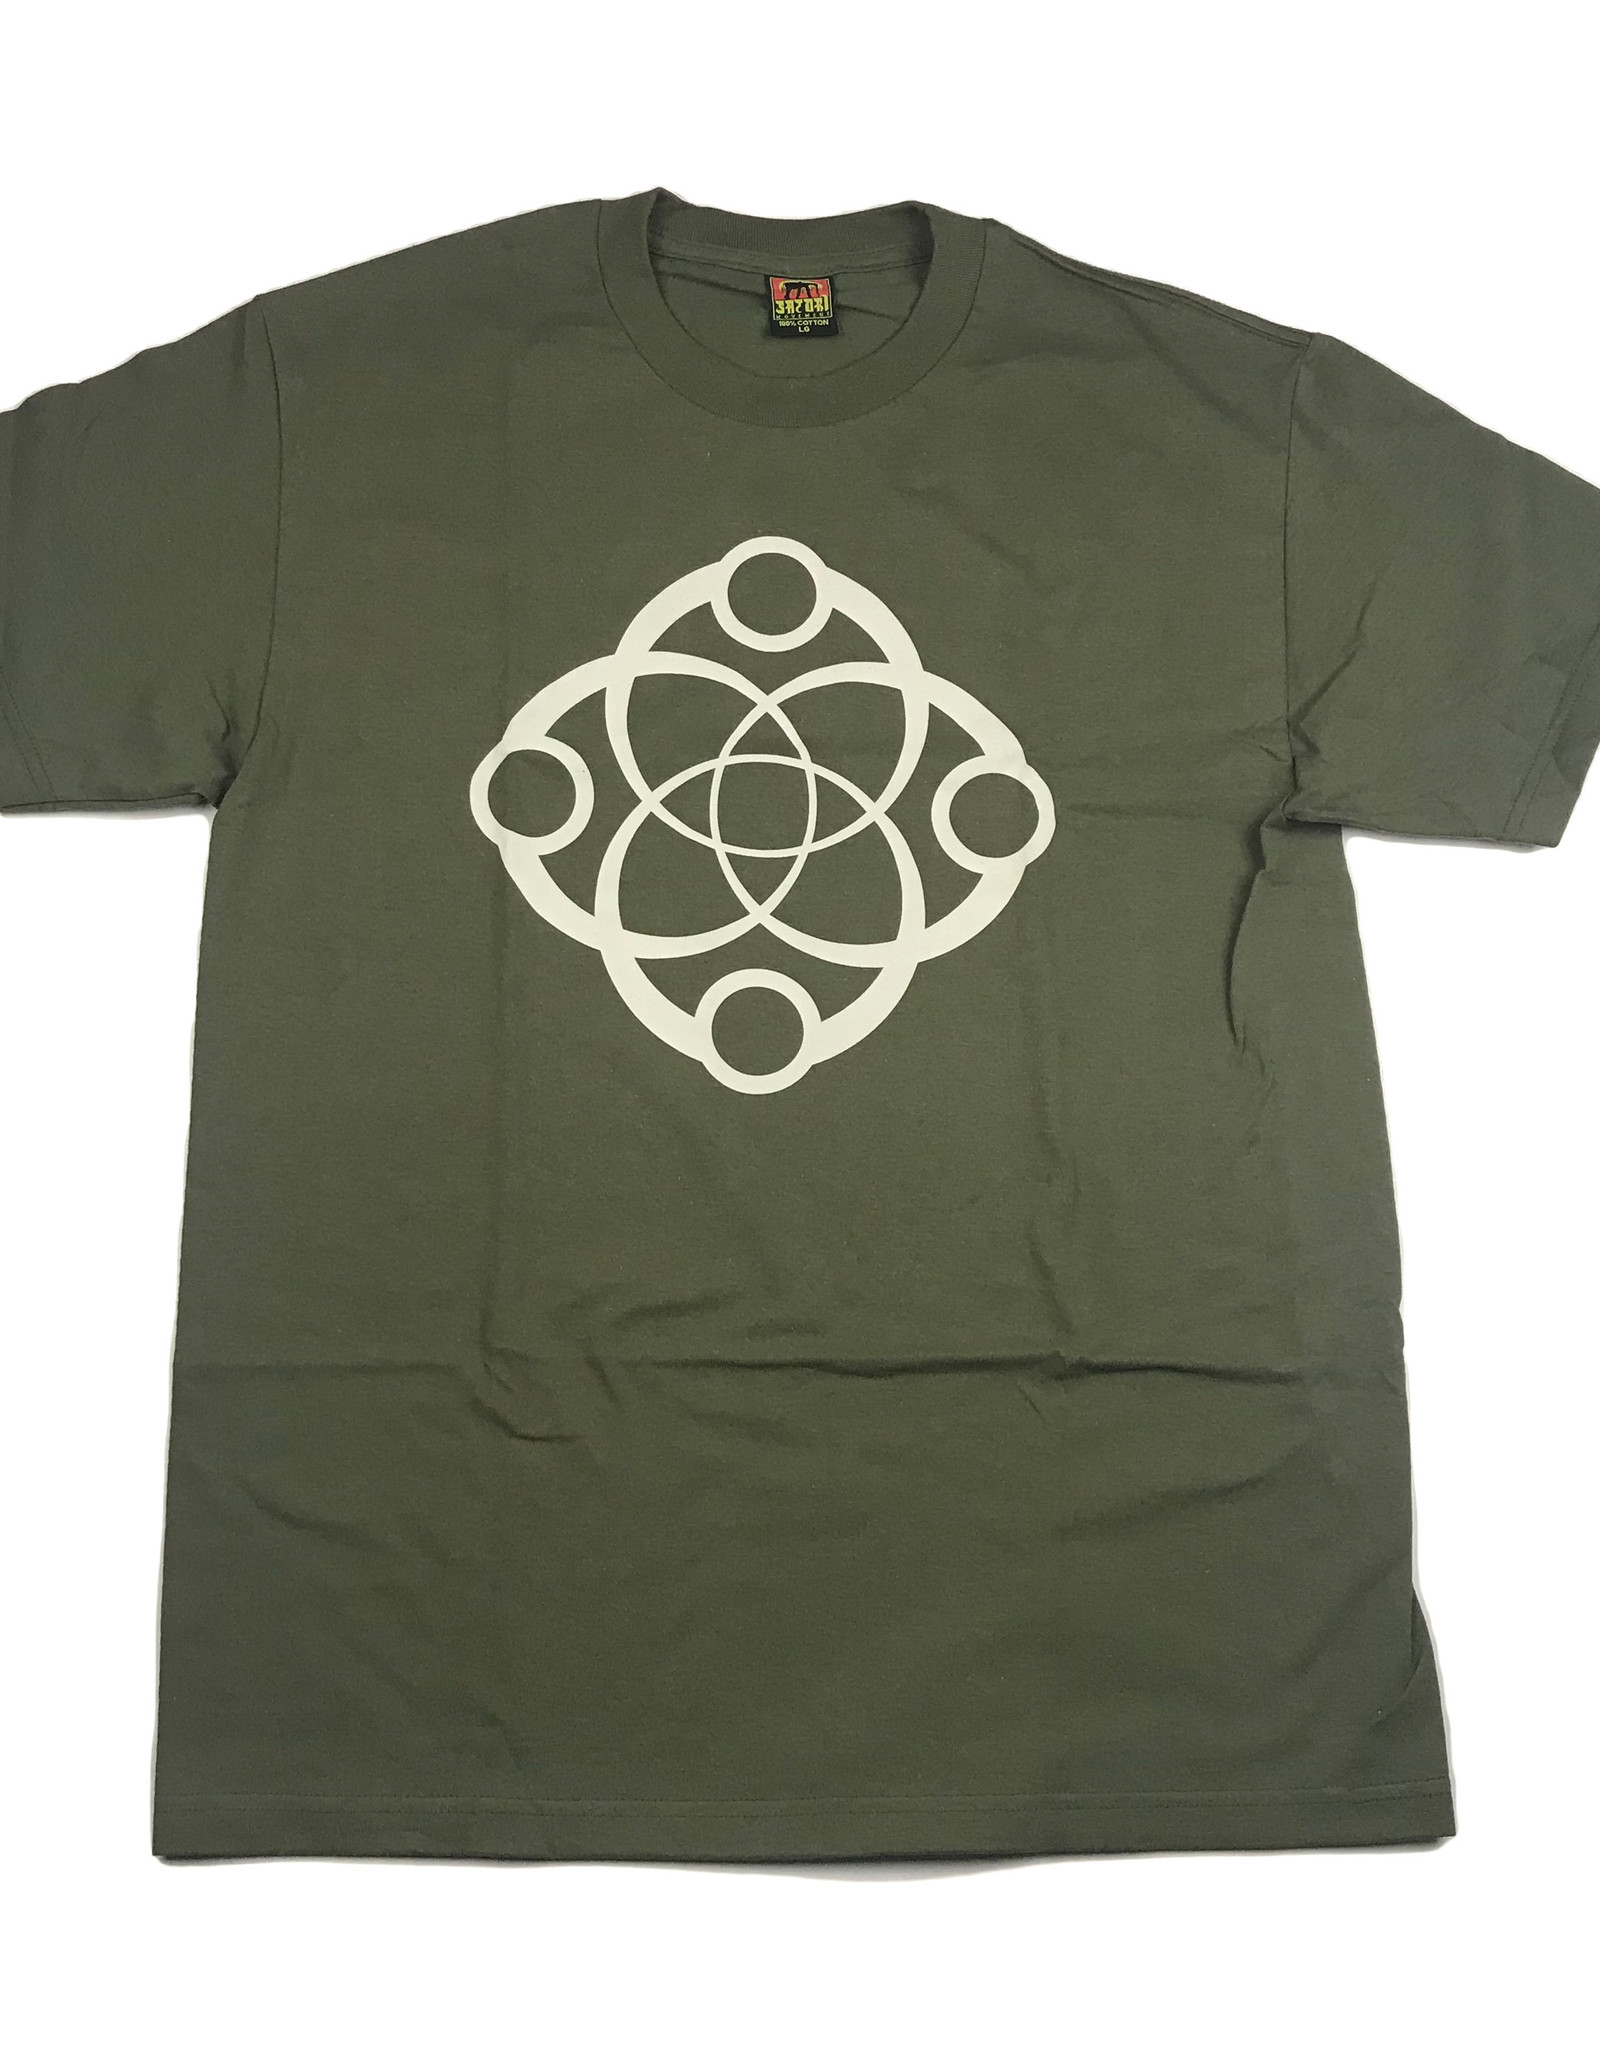 SATORI MOVEMENT SATORI BIG LINK S/S TEE LARGE - MILITARY GREEN